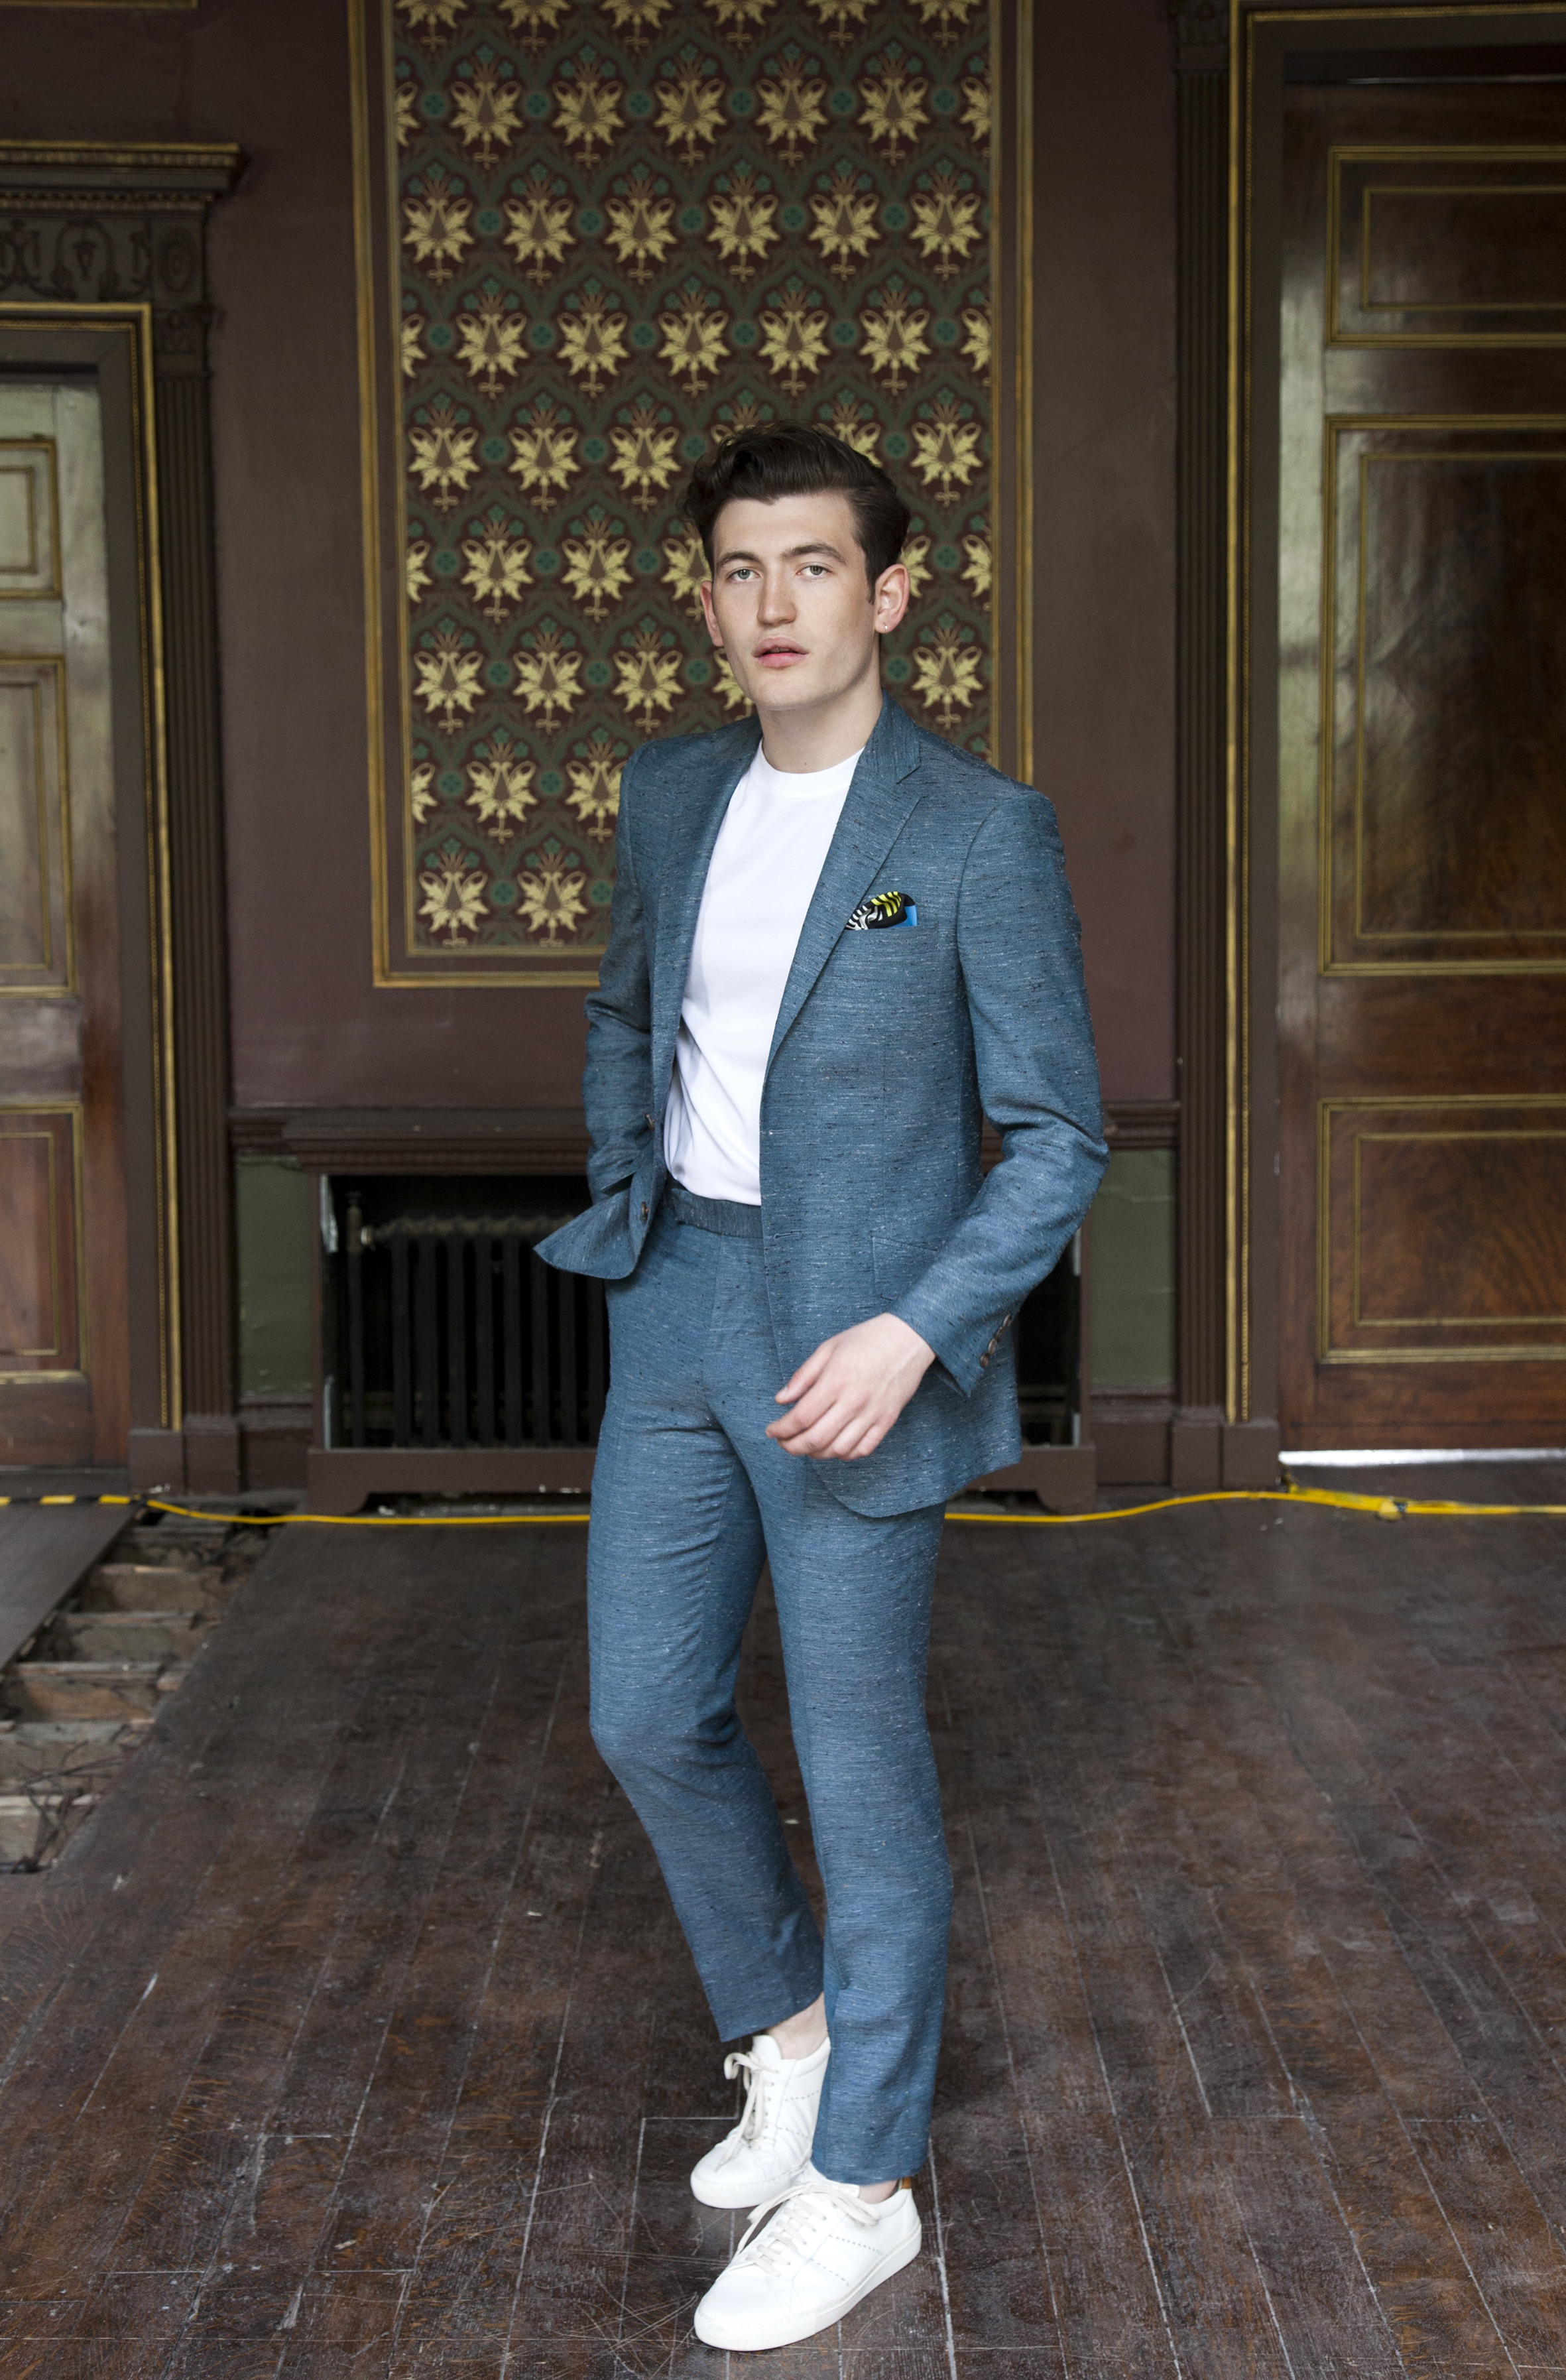 The Ultimate Guide To Buying A Wedding Suit | The Row Blog